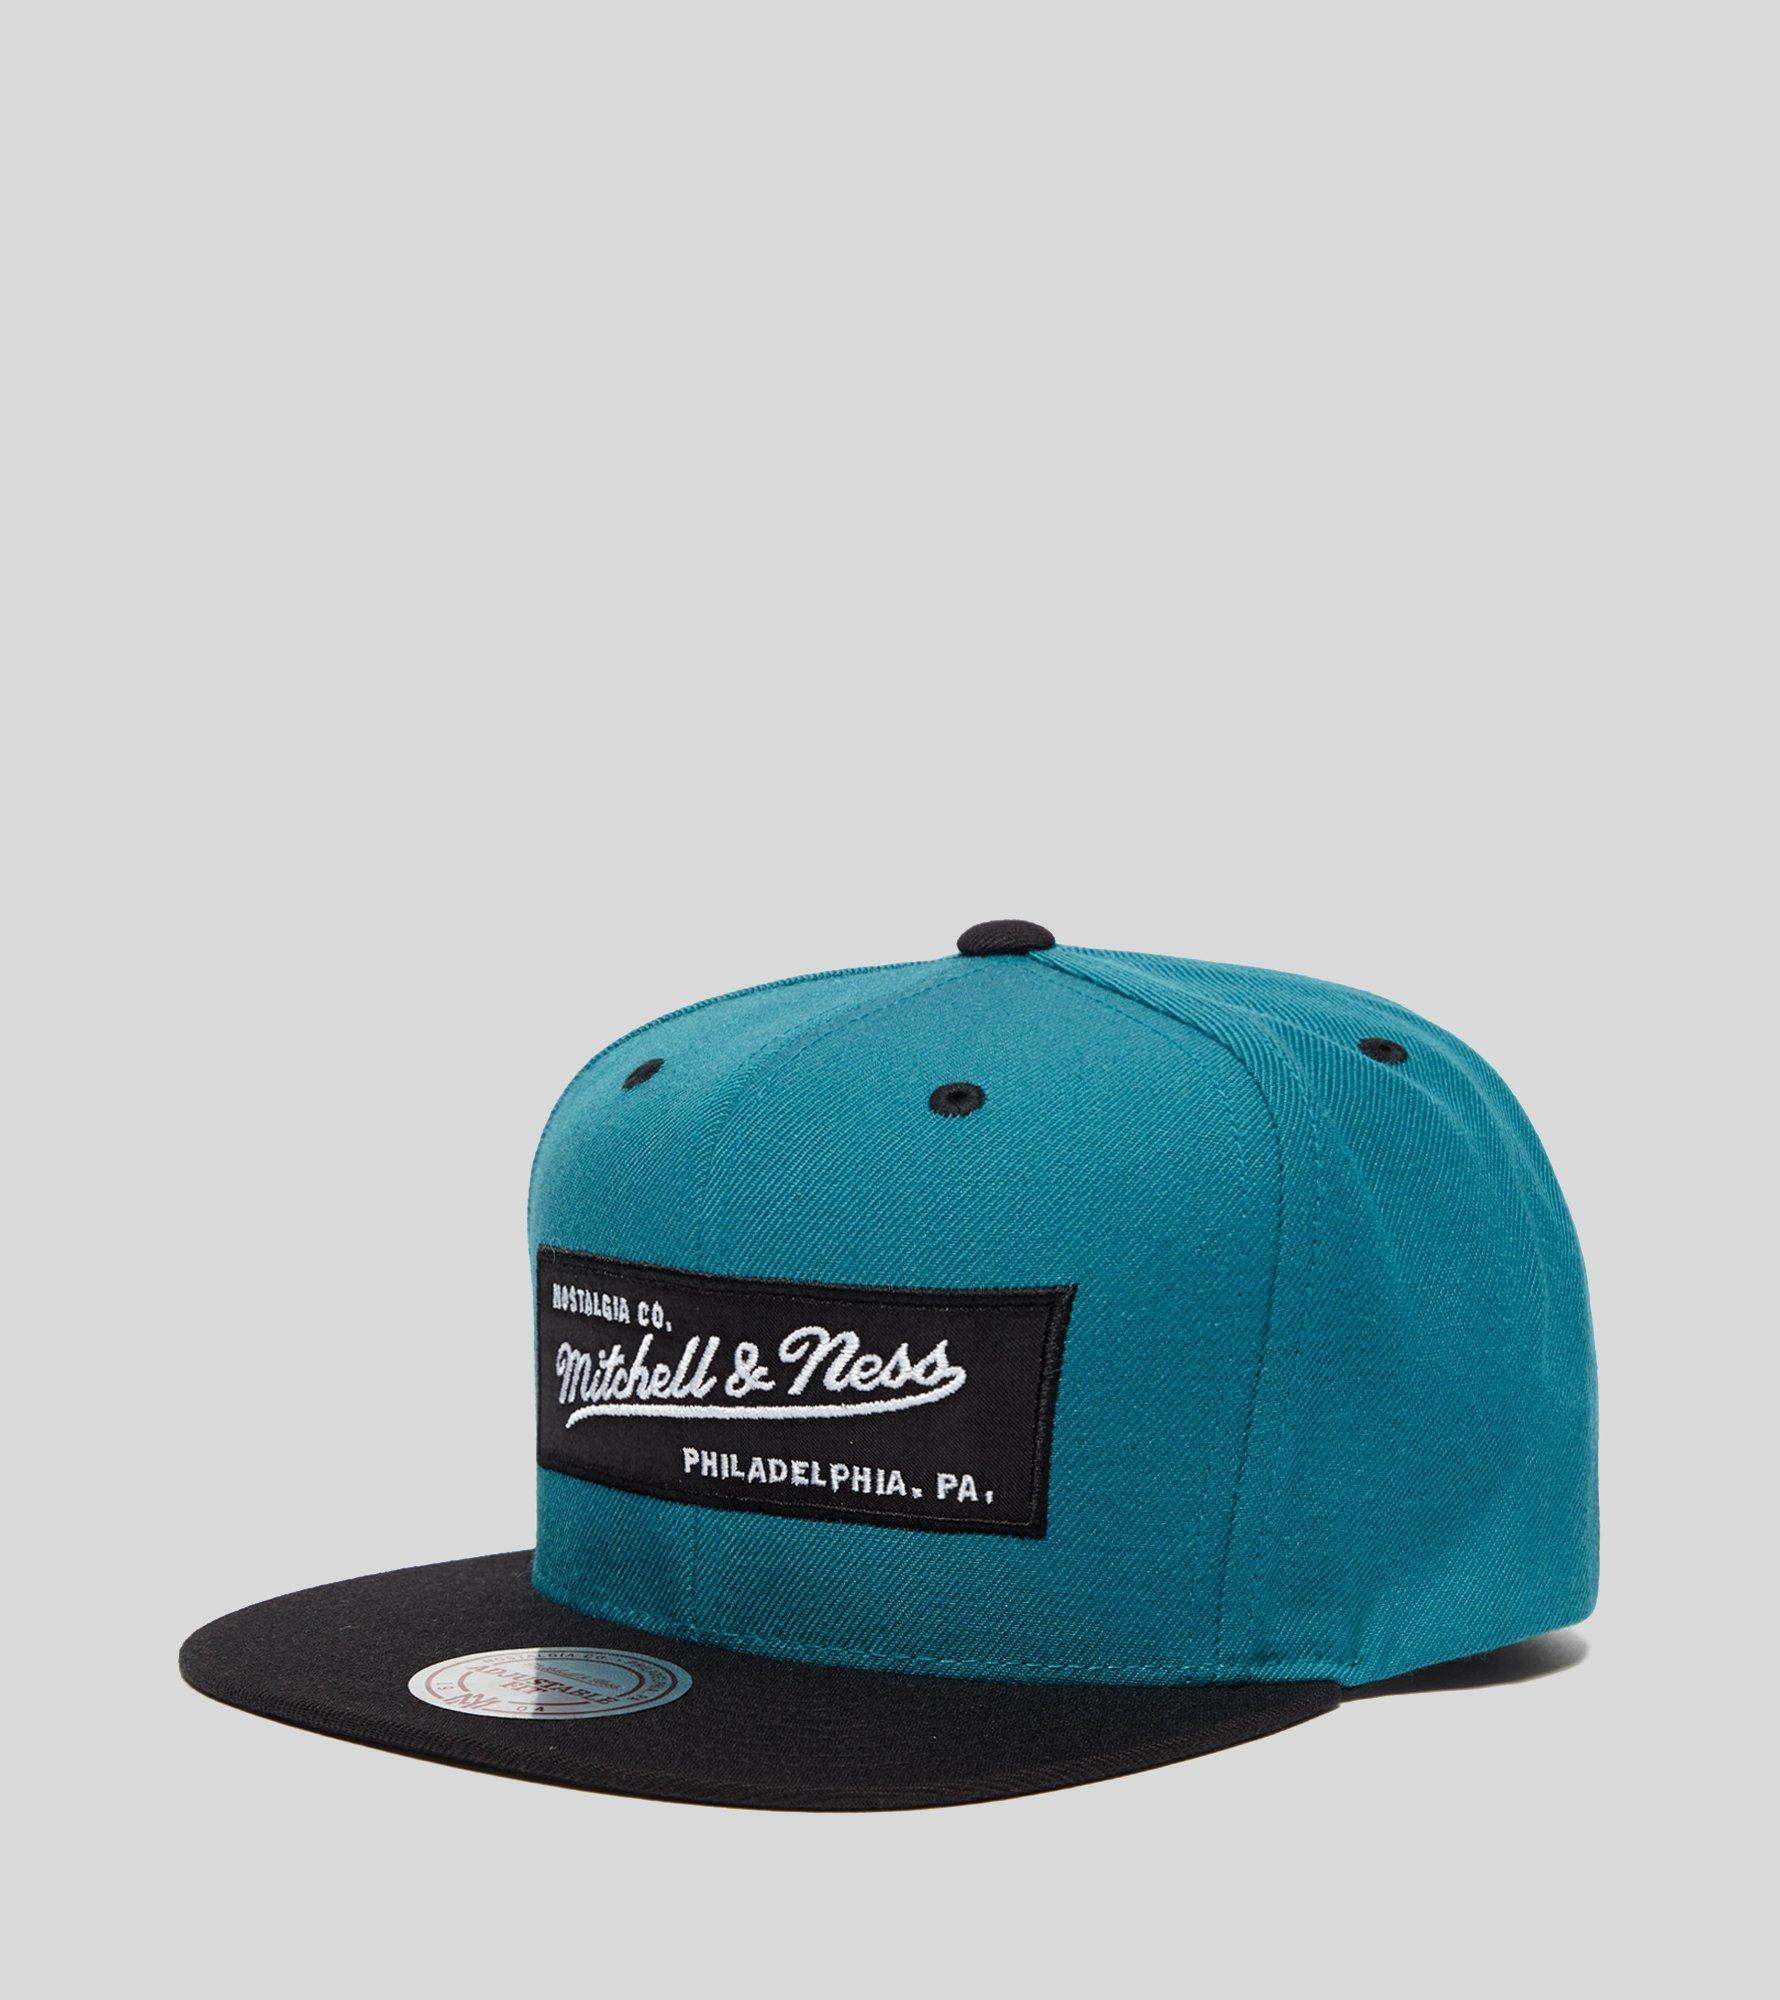 04431a95f67 Mitchell   Ness Box Logo Cap in Blue for Men - Lyst